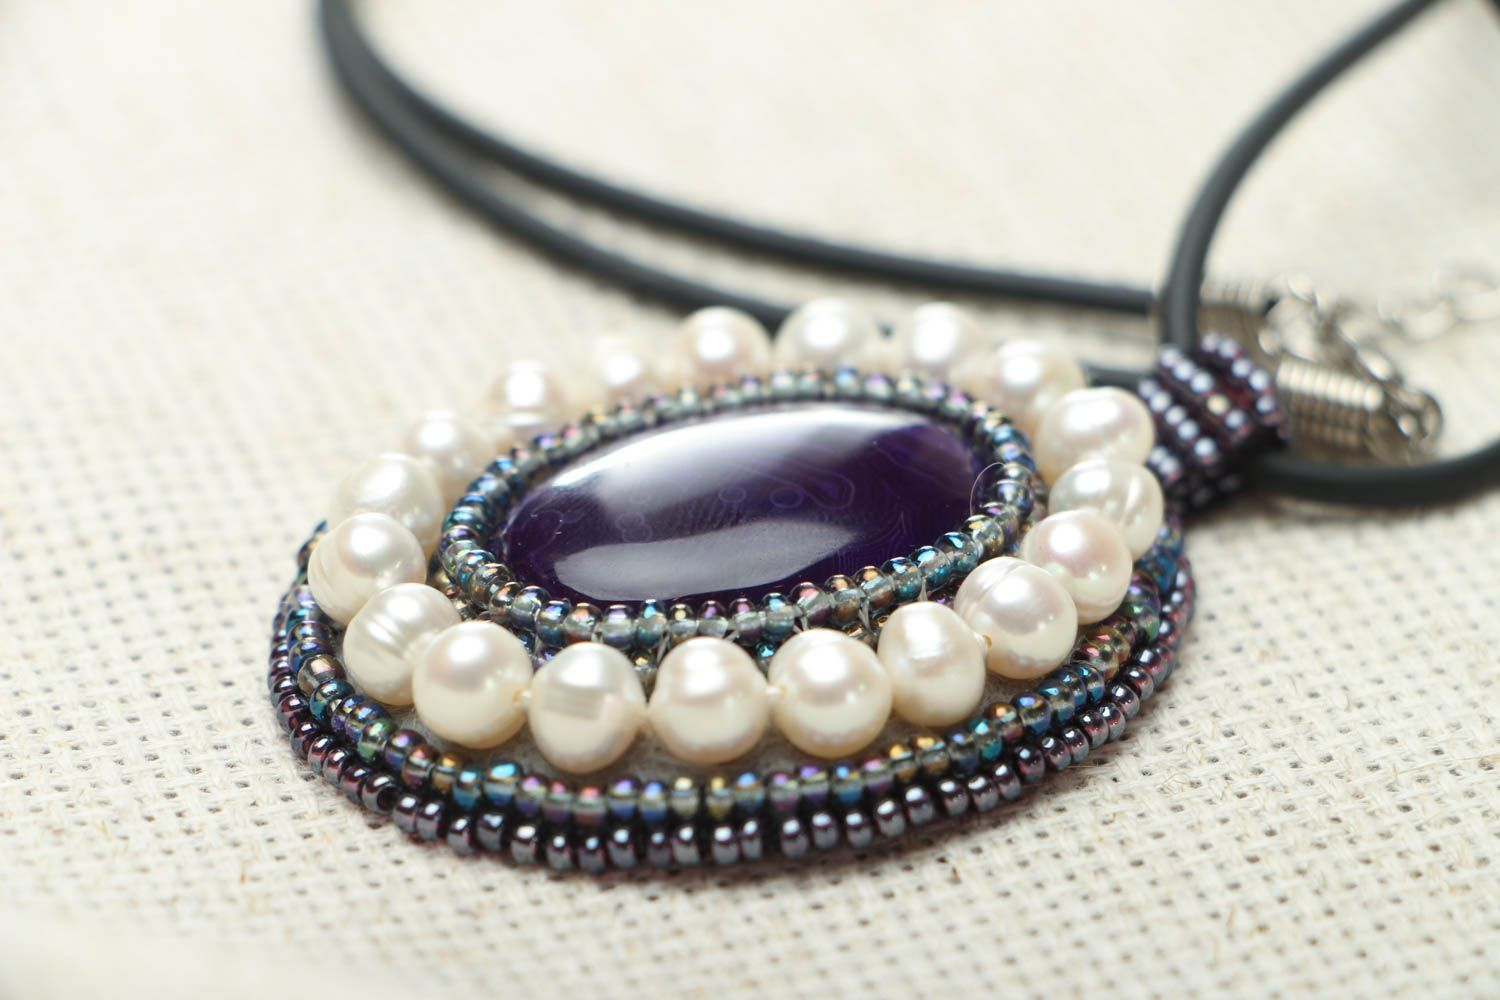 Homemade pendant with amethyst and pearls photo 3